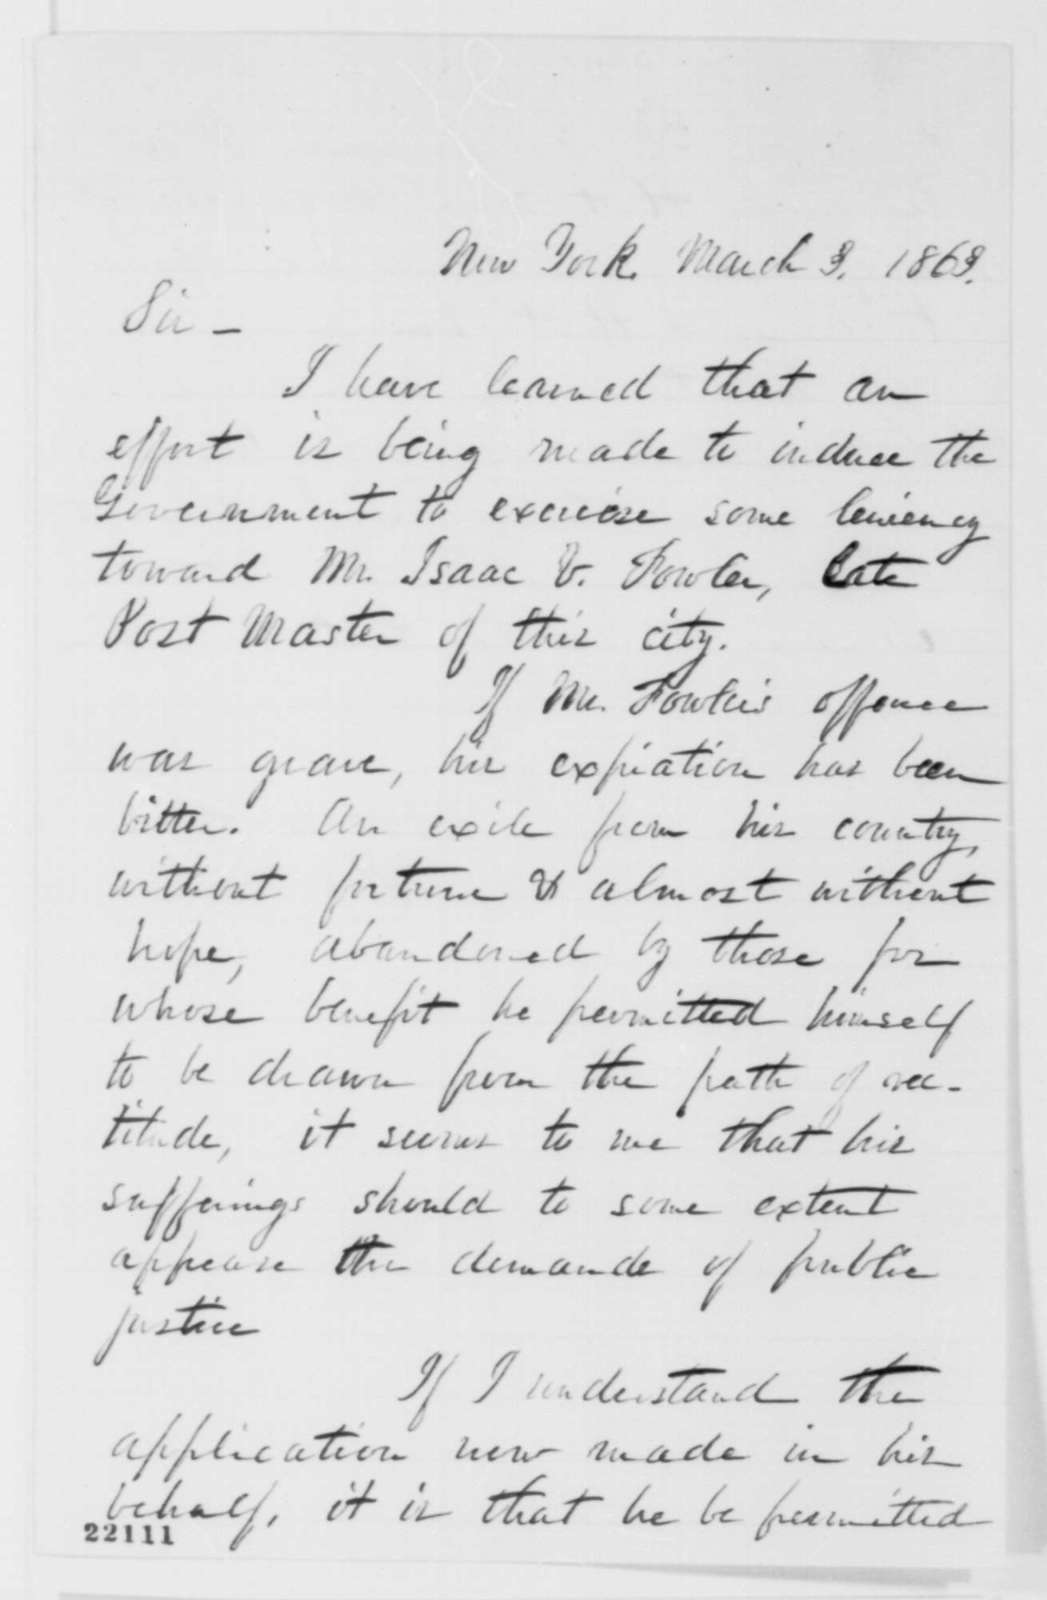 R. W. Potter to Abraham Lincoln, Tuesday, March 03, 1863  (Writes on behalf of Isaac Fowler)